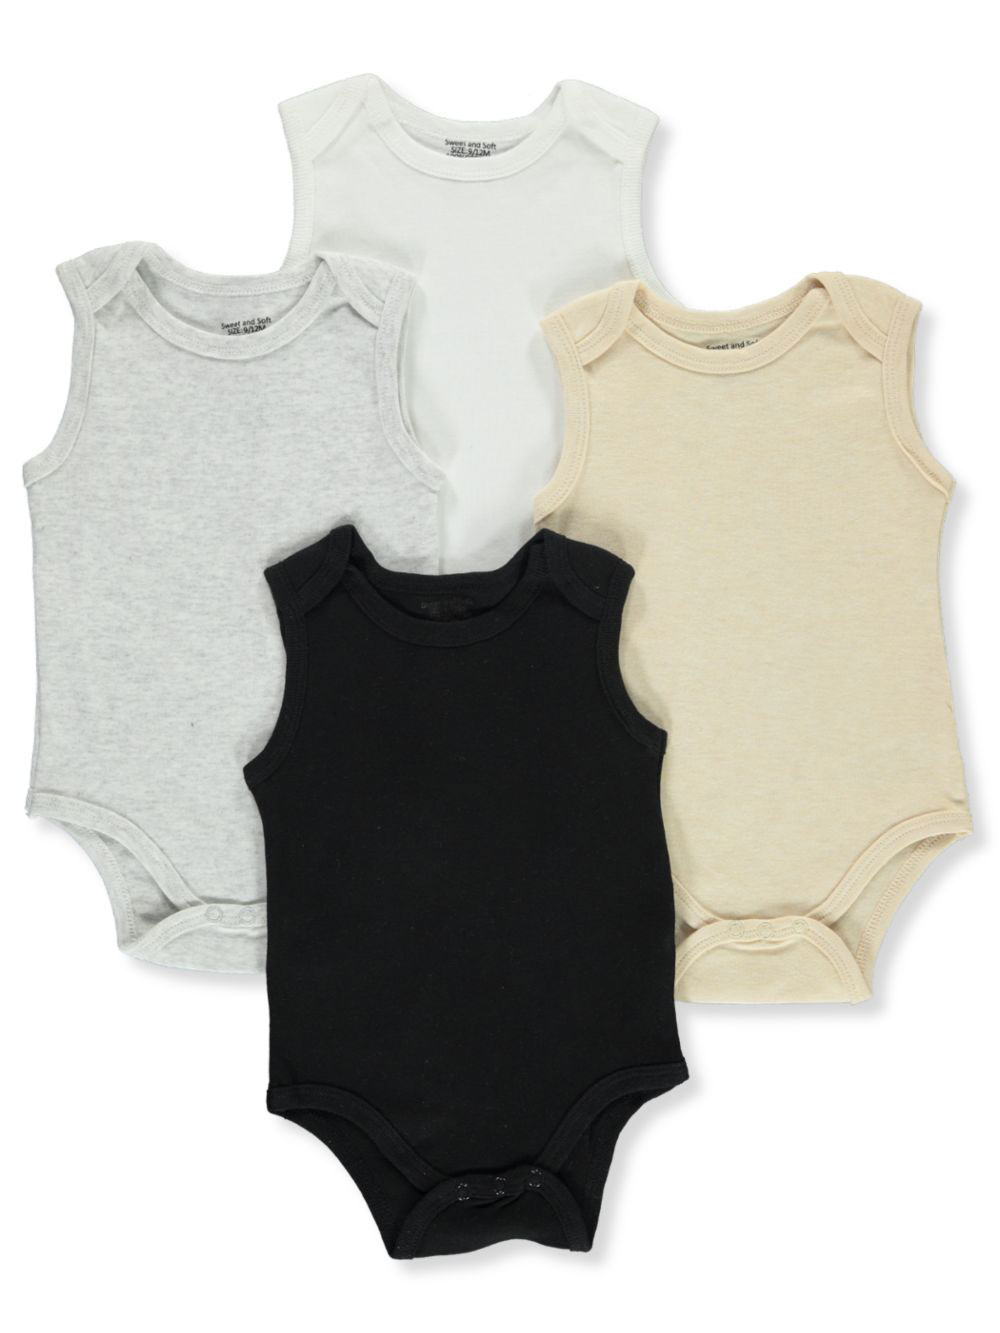 Black and Multicolor Bodysuits